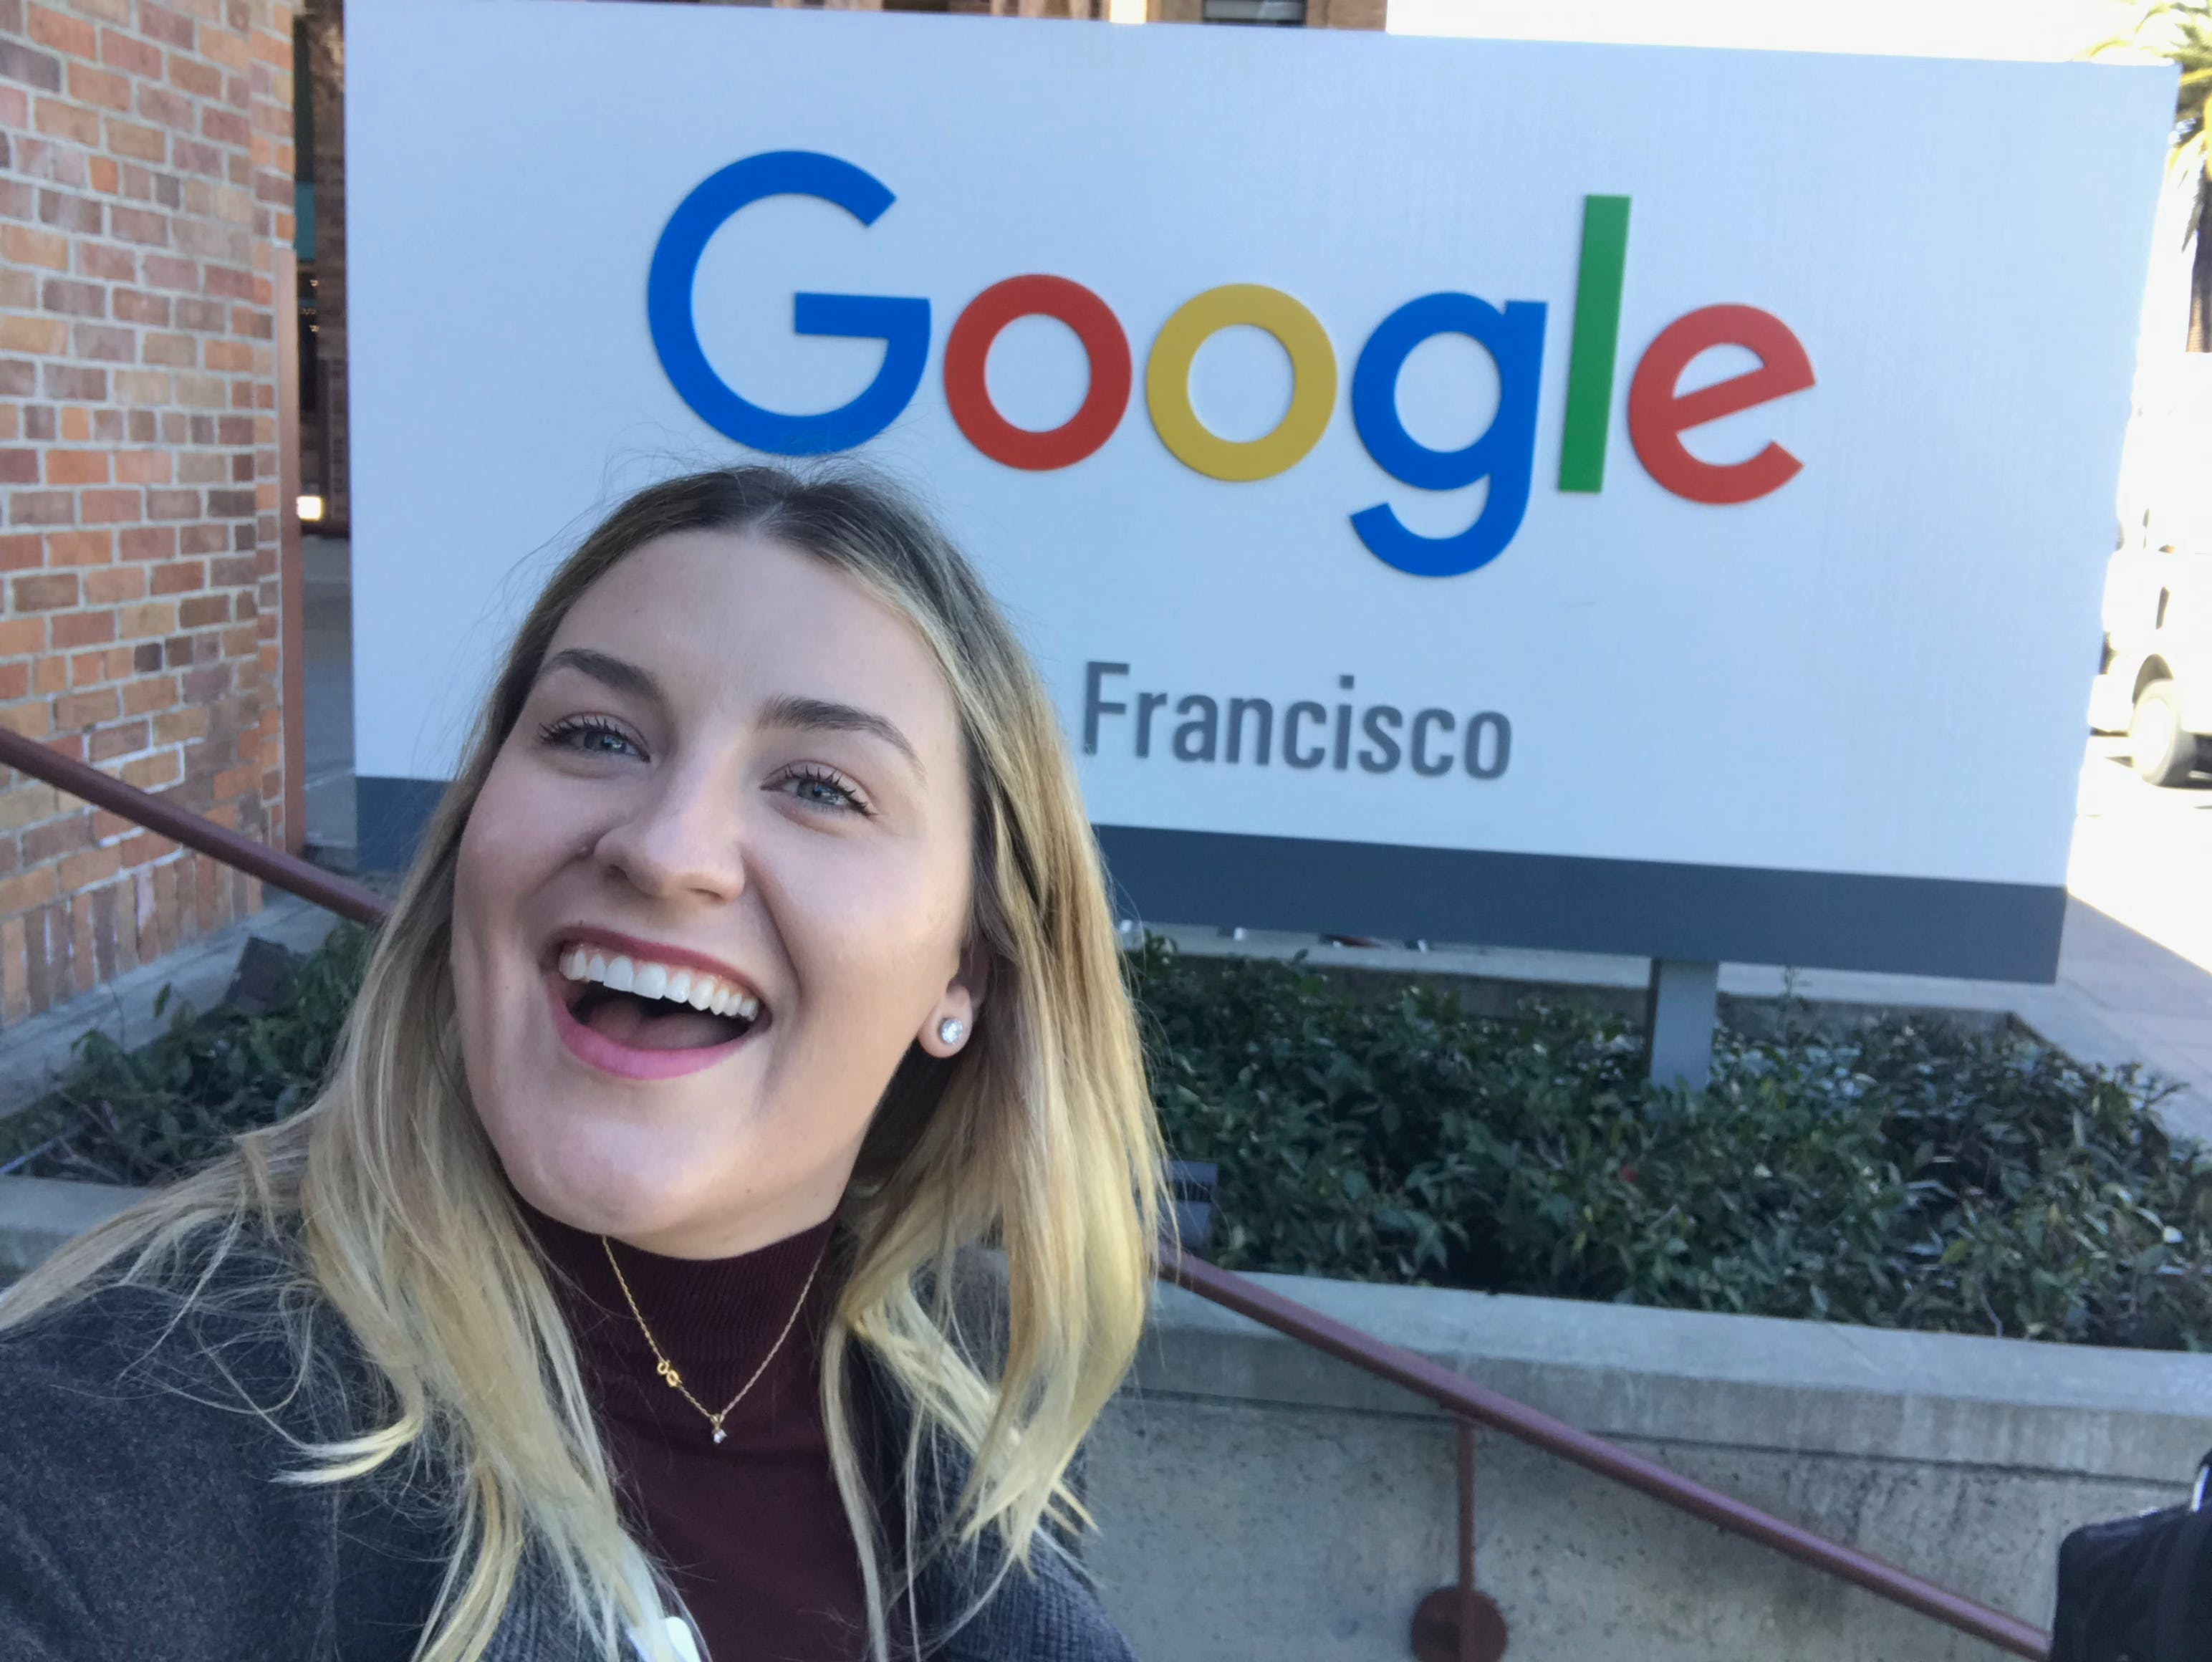 A graduate smiling in front of the San Fransisco Google office